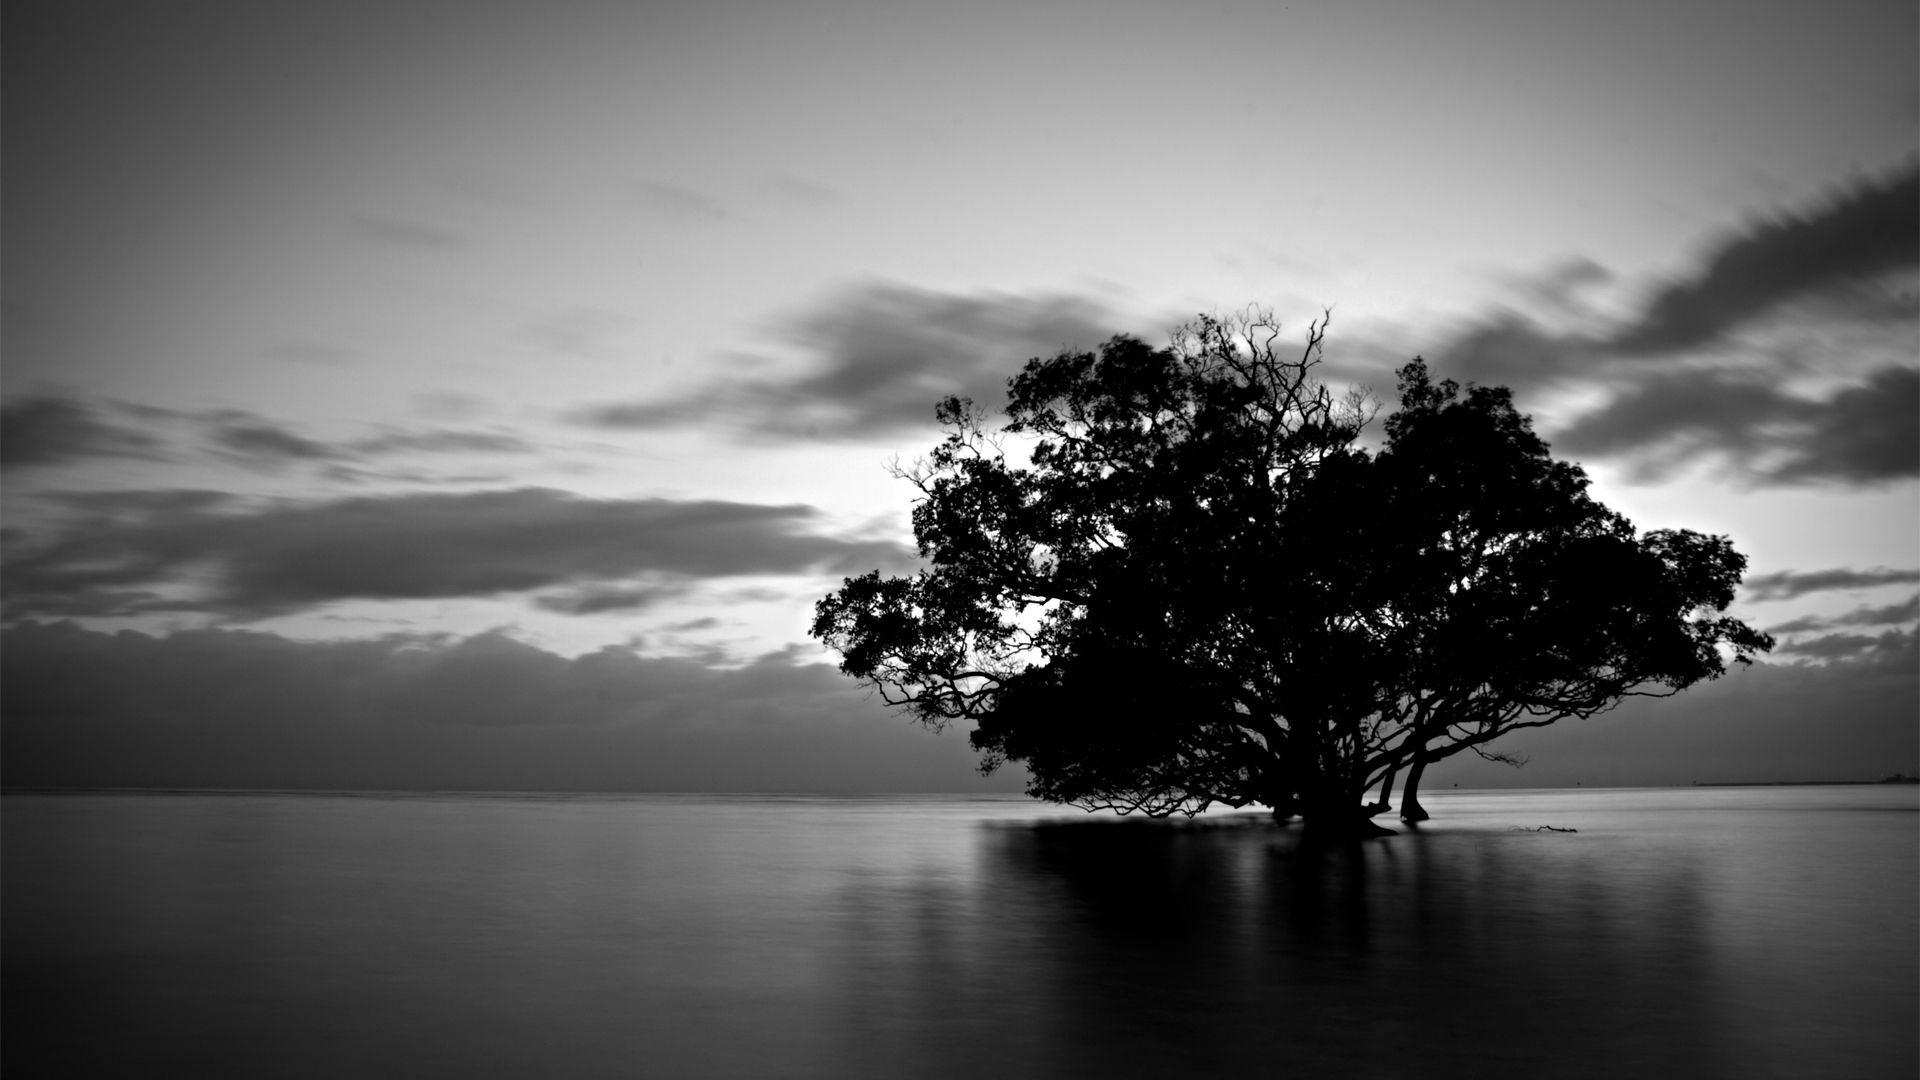 Black White Hd Wallpapers Nature Google Zoeken Black White Wallpaper White Wallpaper Tree Wallpaper Black White